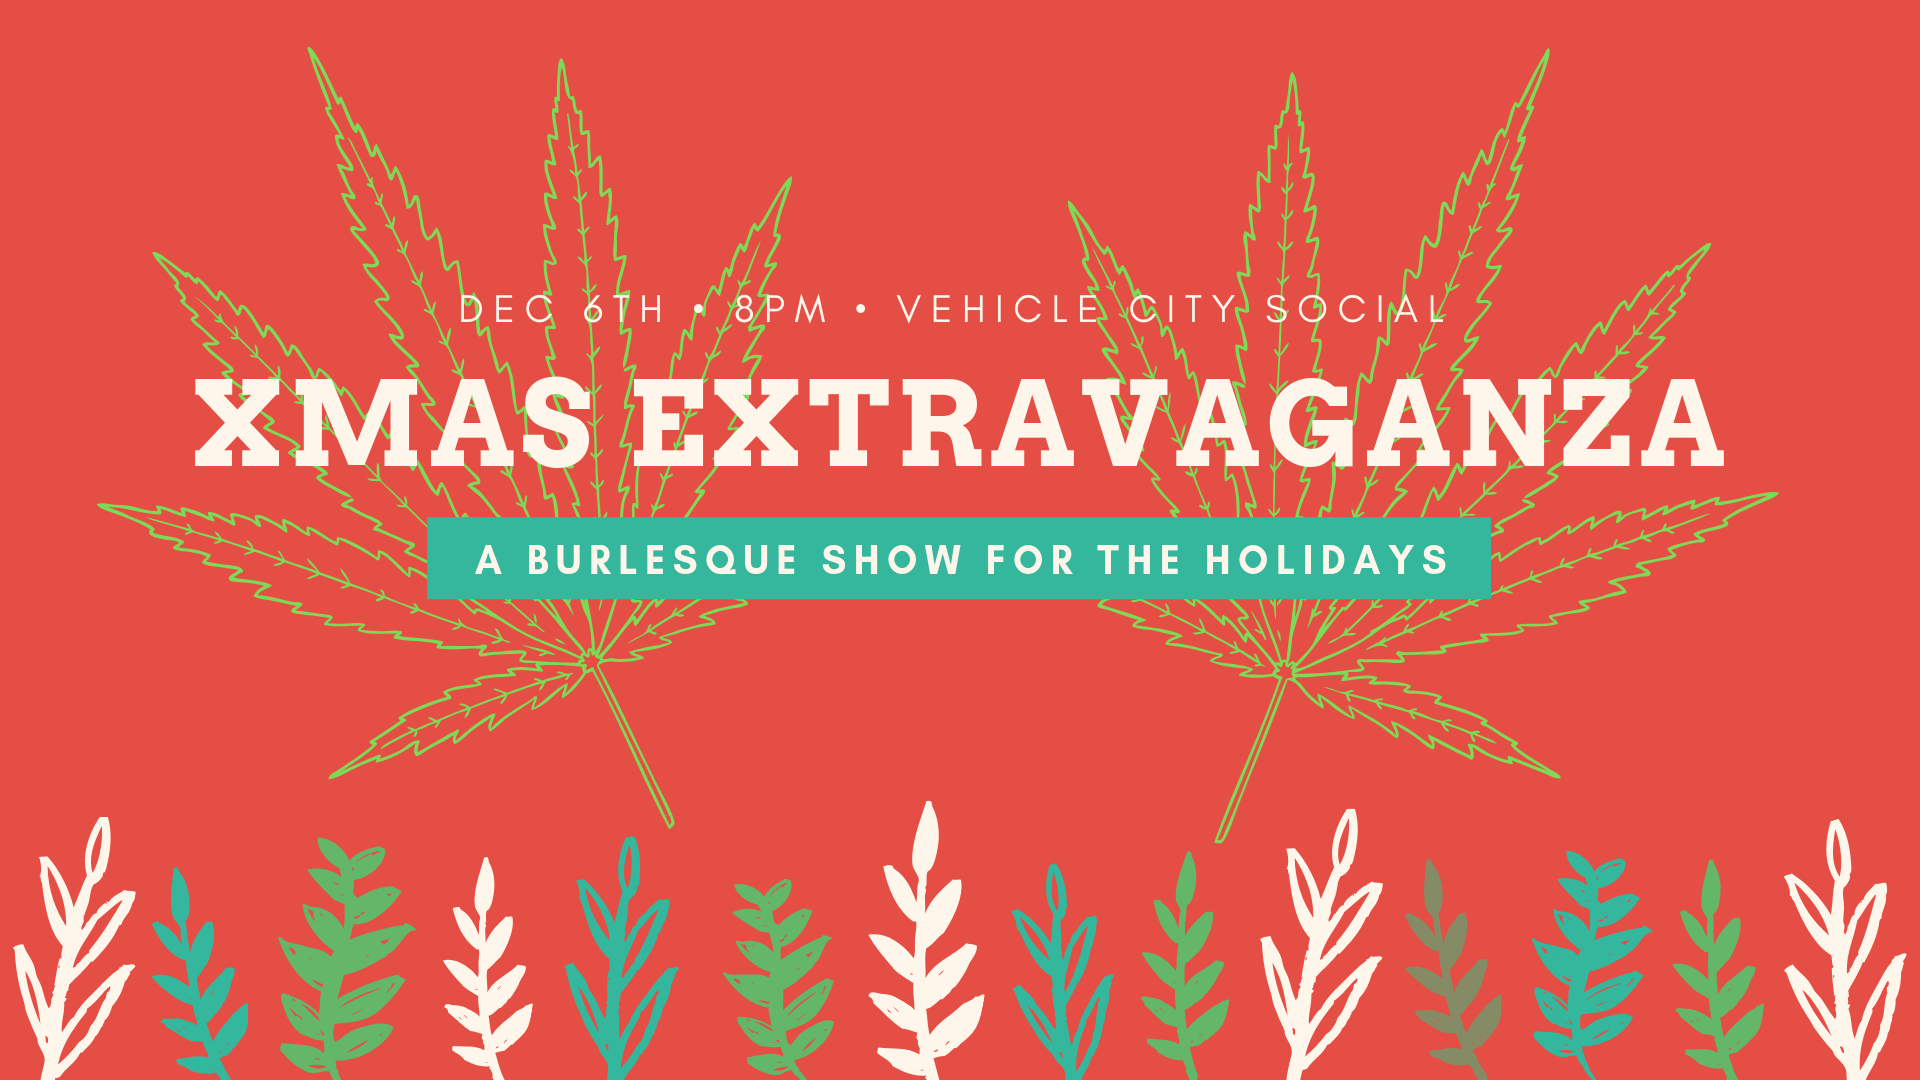 Xmas Extravaganza - A Burlesque Show for the Holidays